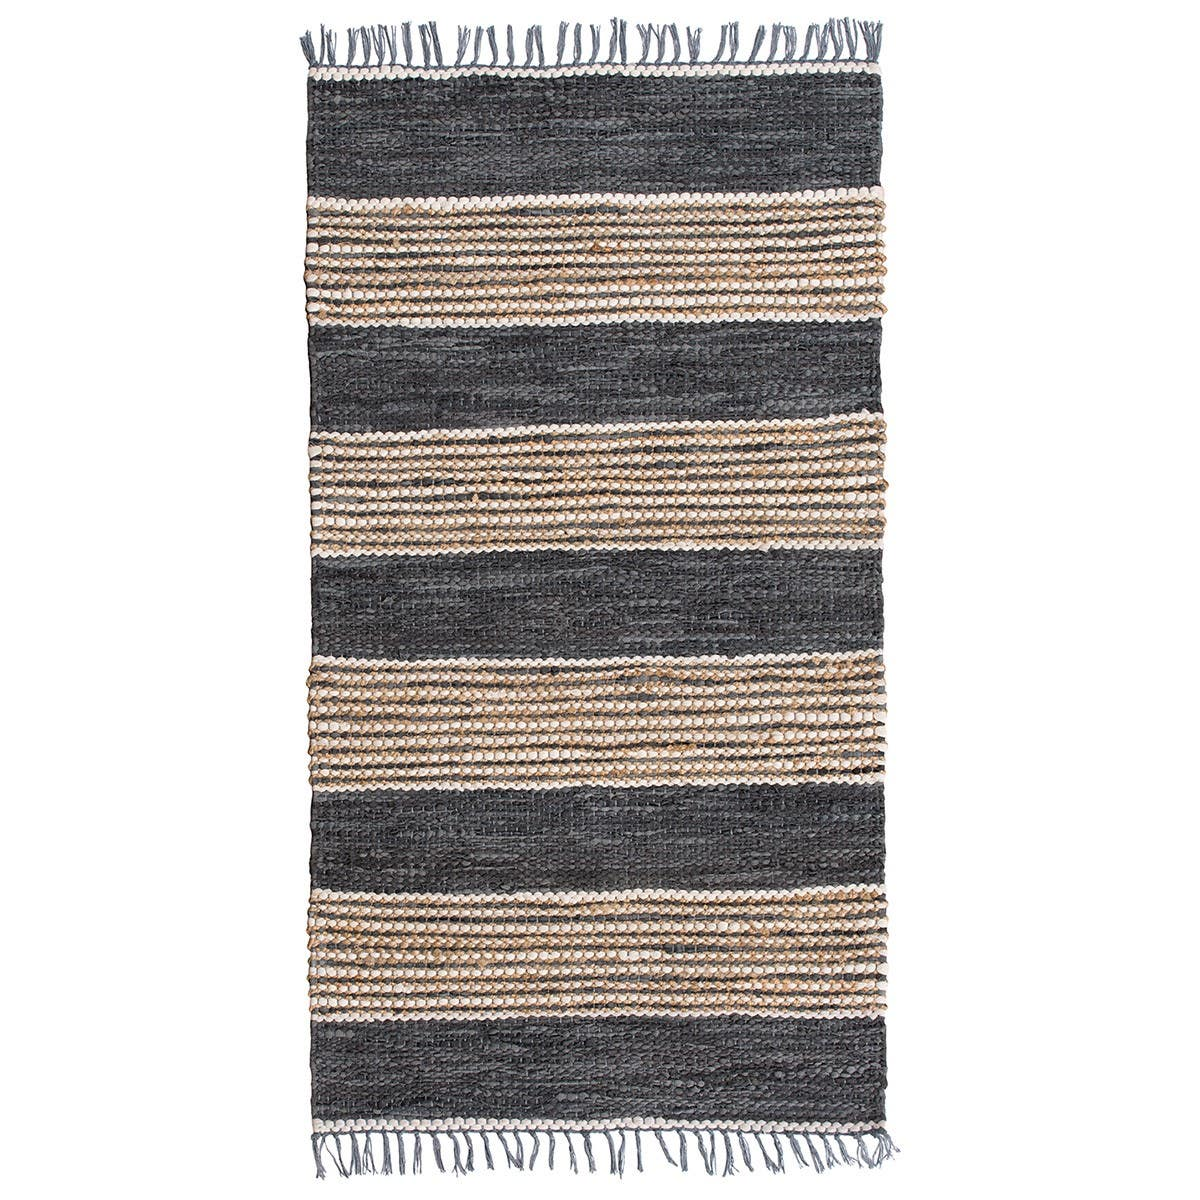 Leather and Jute Rug